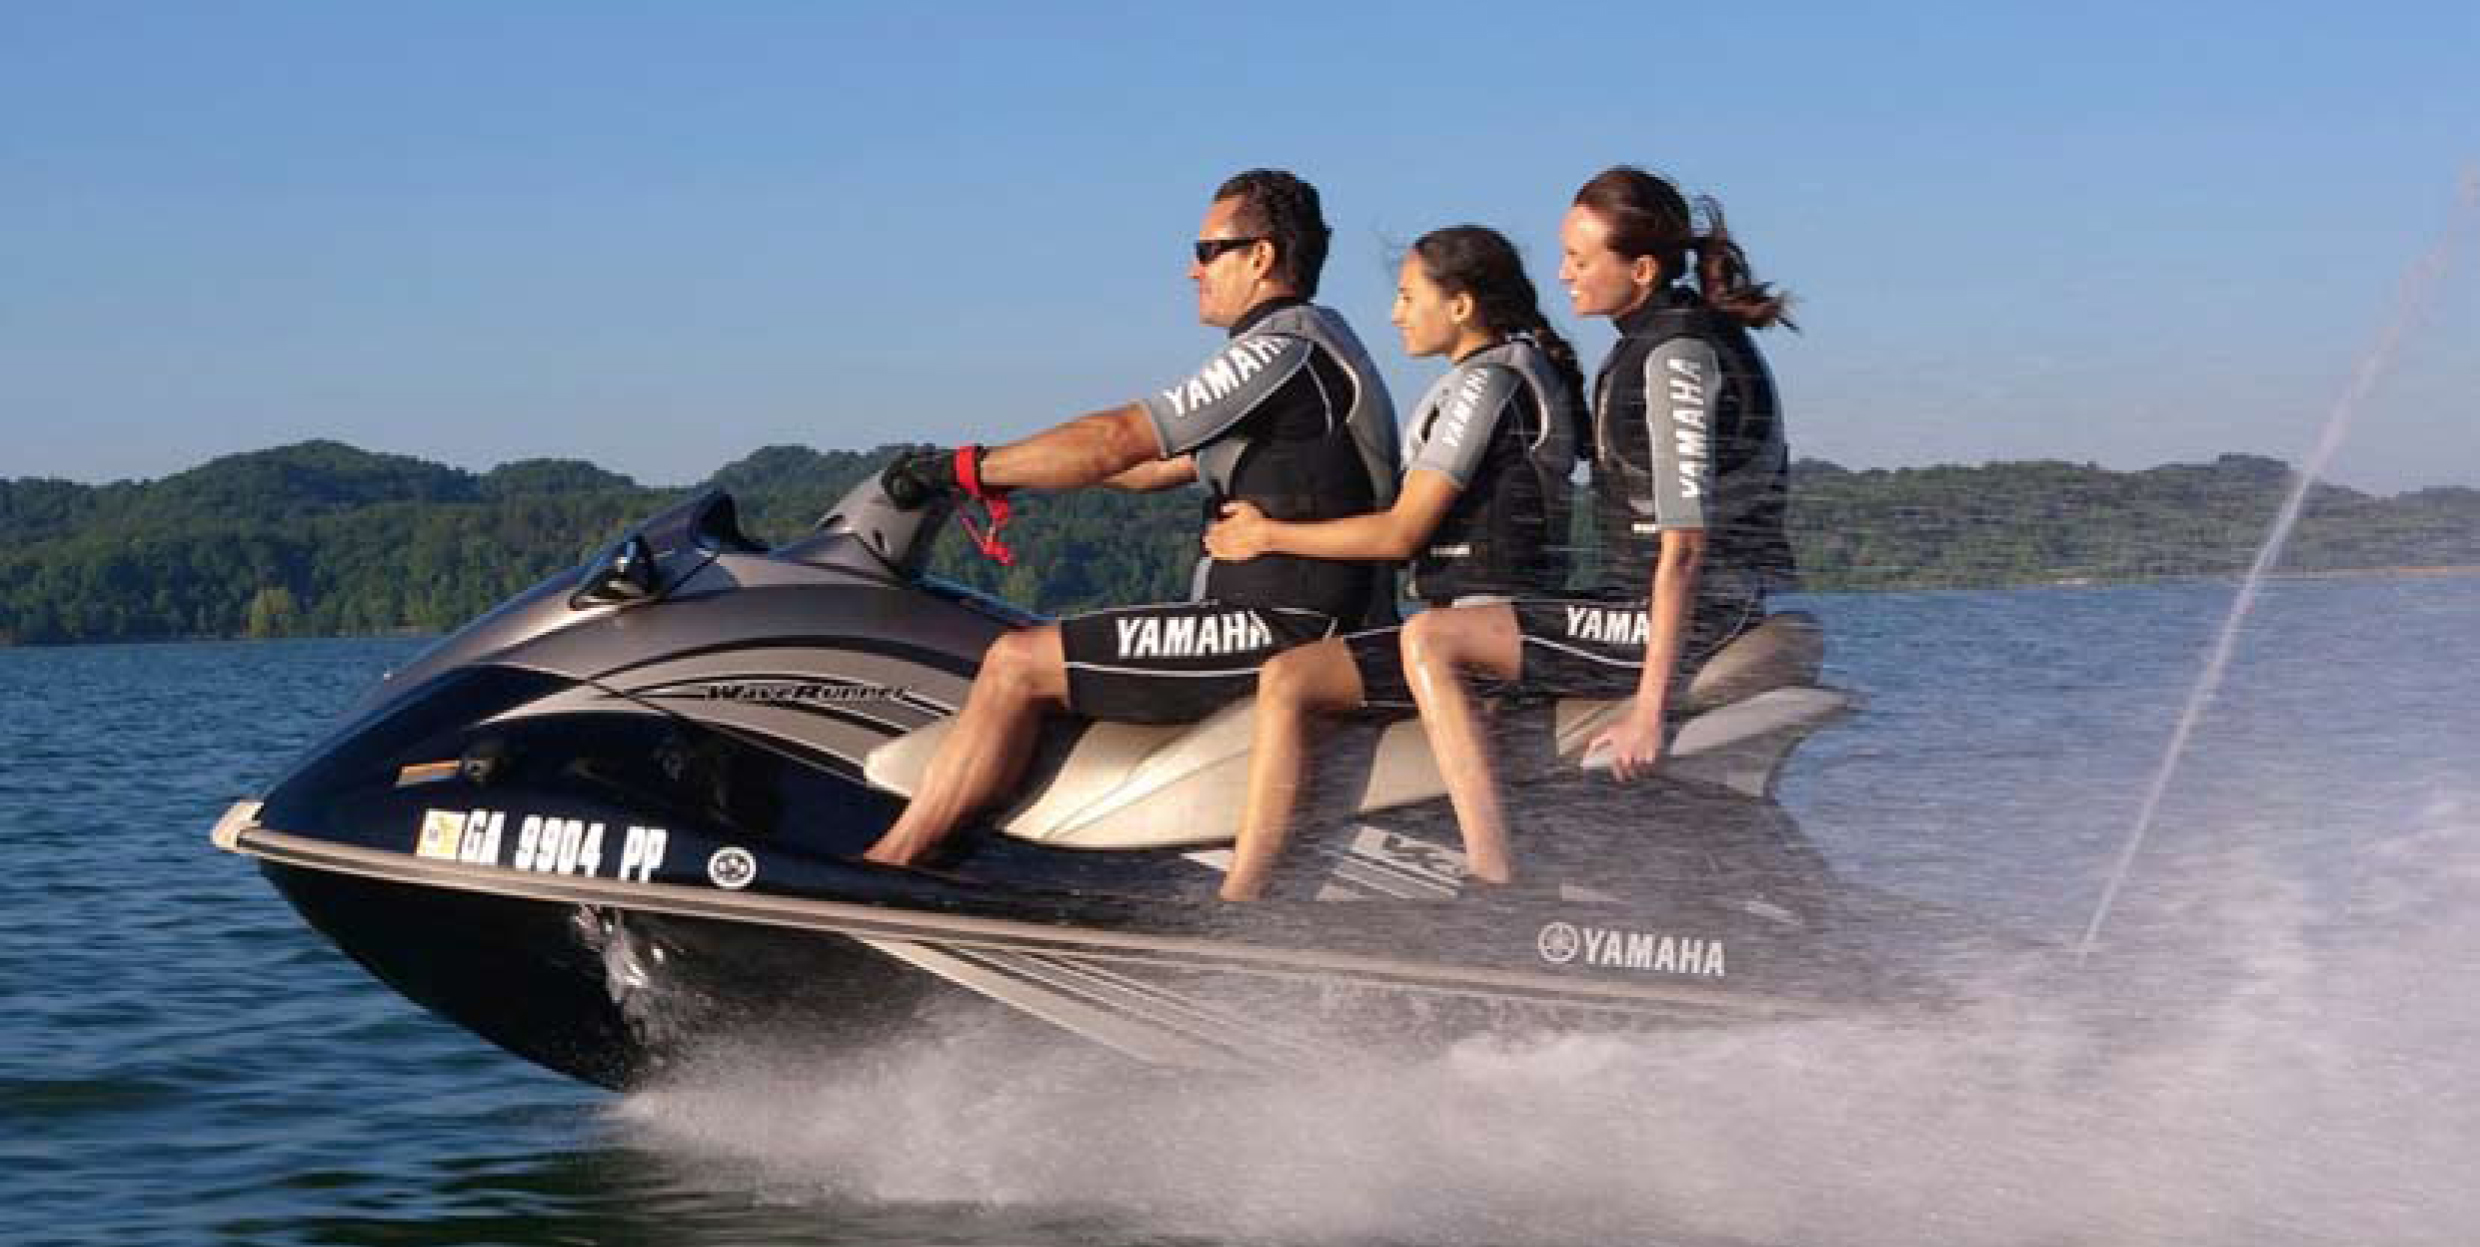 3 person jet ski and waverunner rentals Big Bear Lake at North Shore Landing